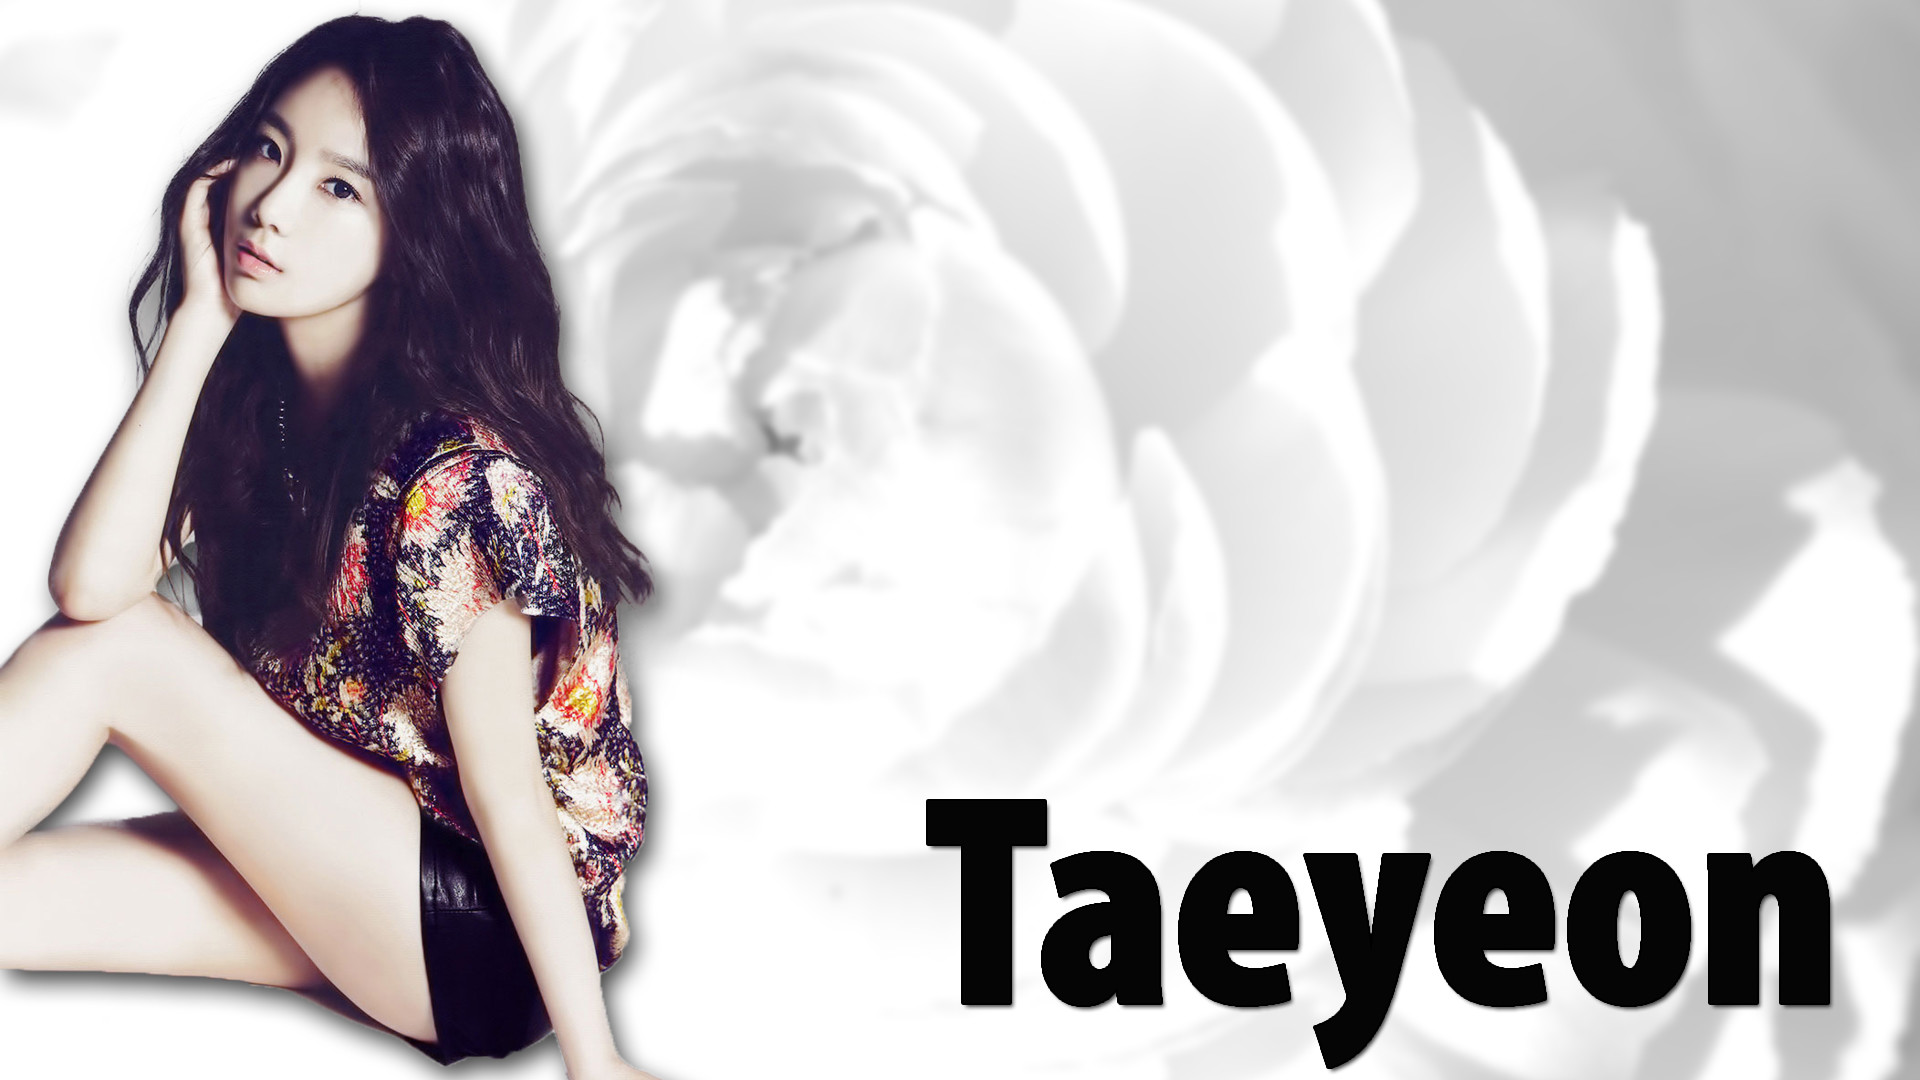 Res: 1920x1080, Taeyeon Wallpapers Album on Imgur